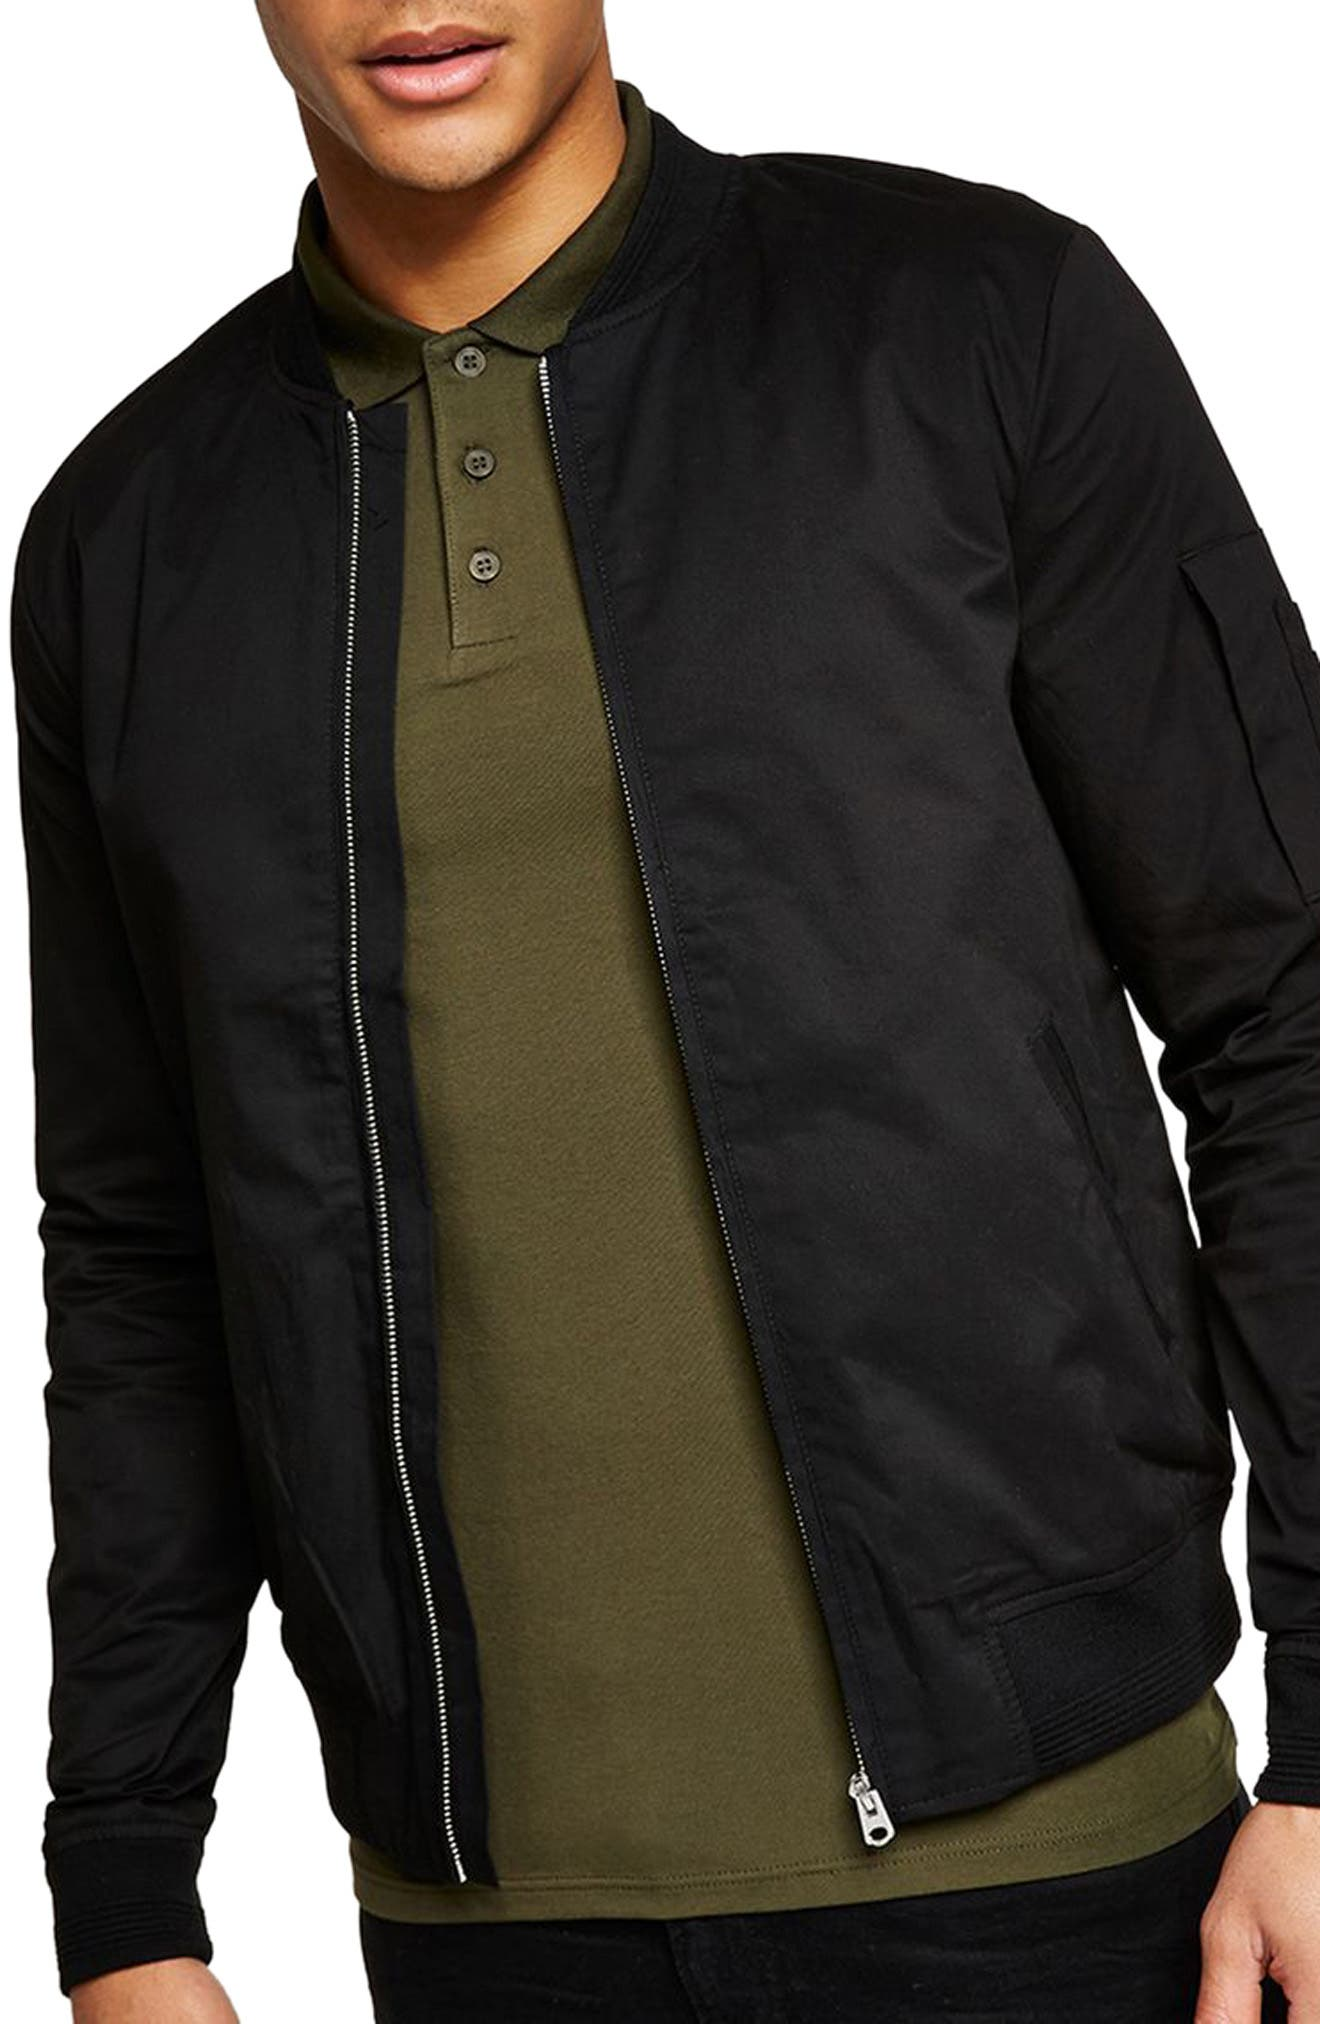 Muscle Fit Bomber Jacket,                             Main thumbnail 1, color,                             001